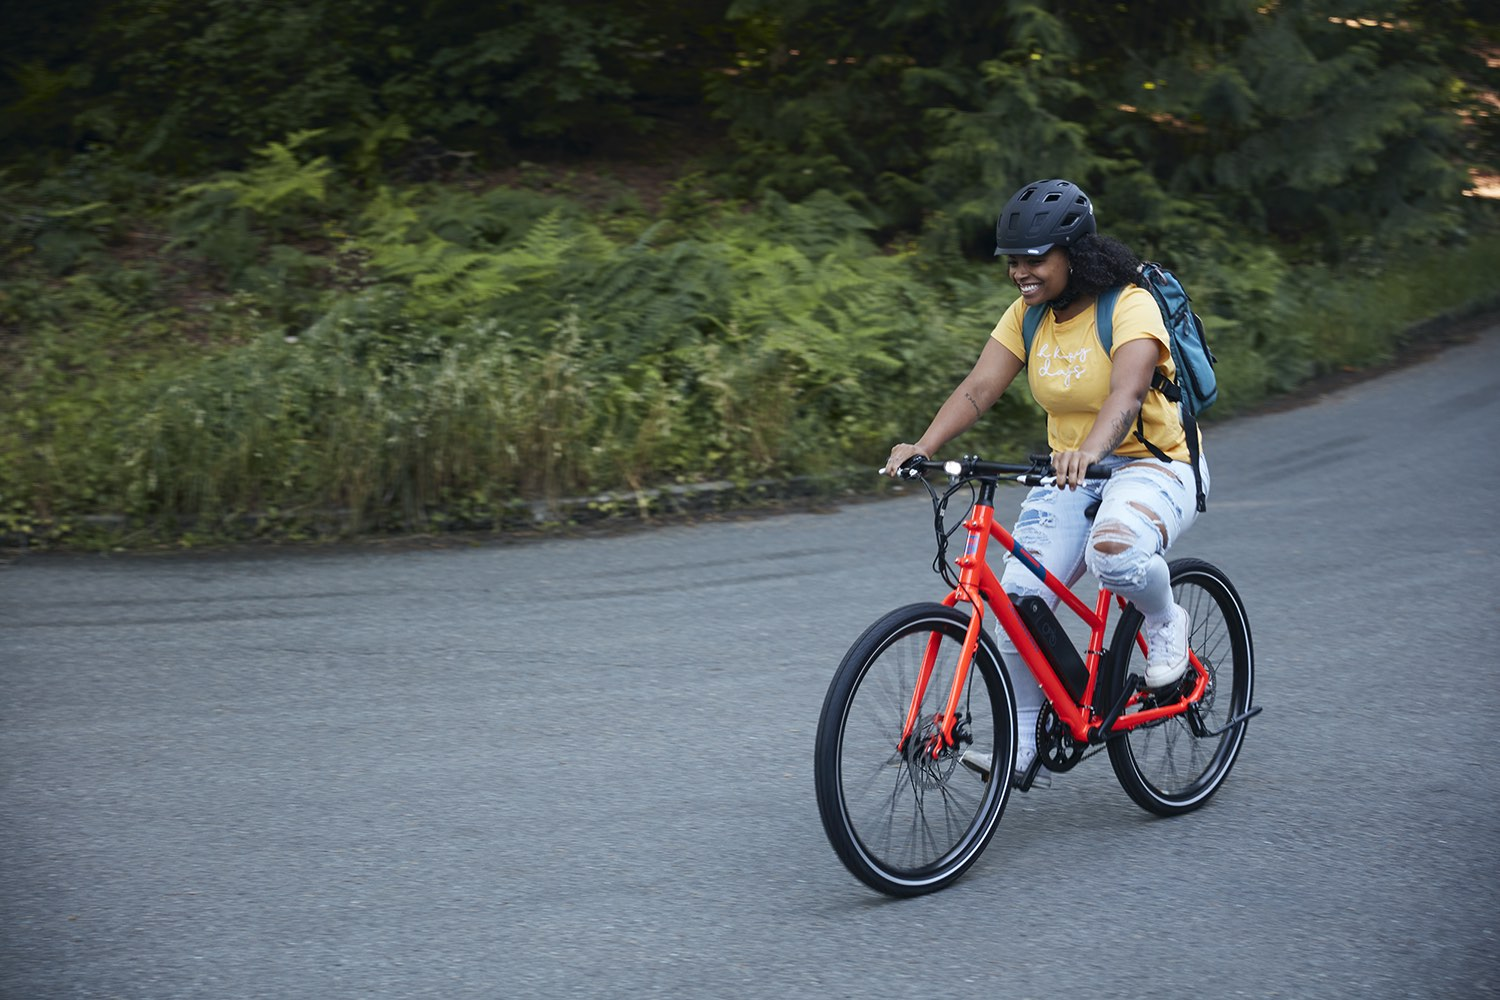 A woman smiles as she rides a red RadMission down a rural street.